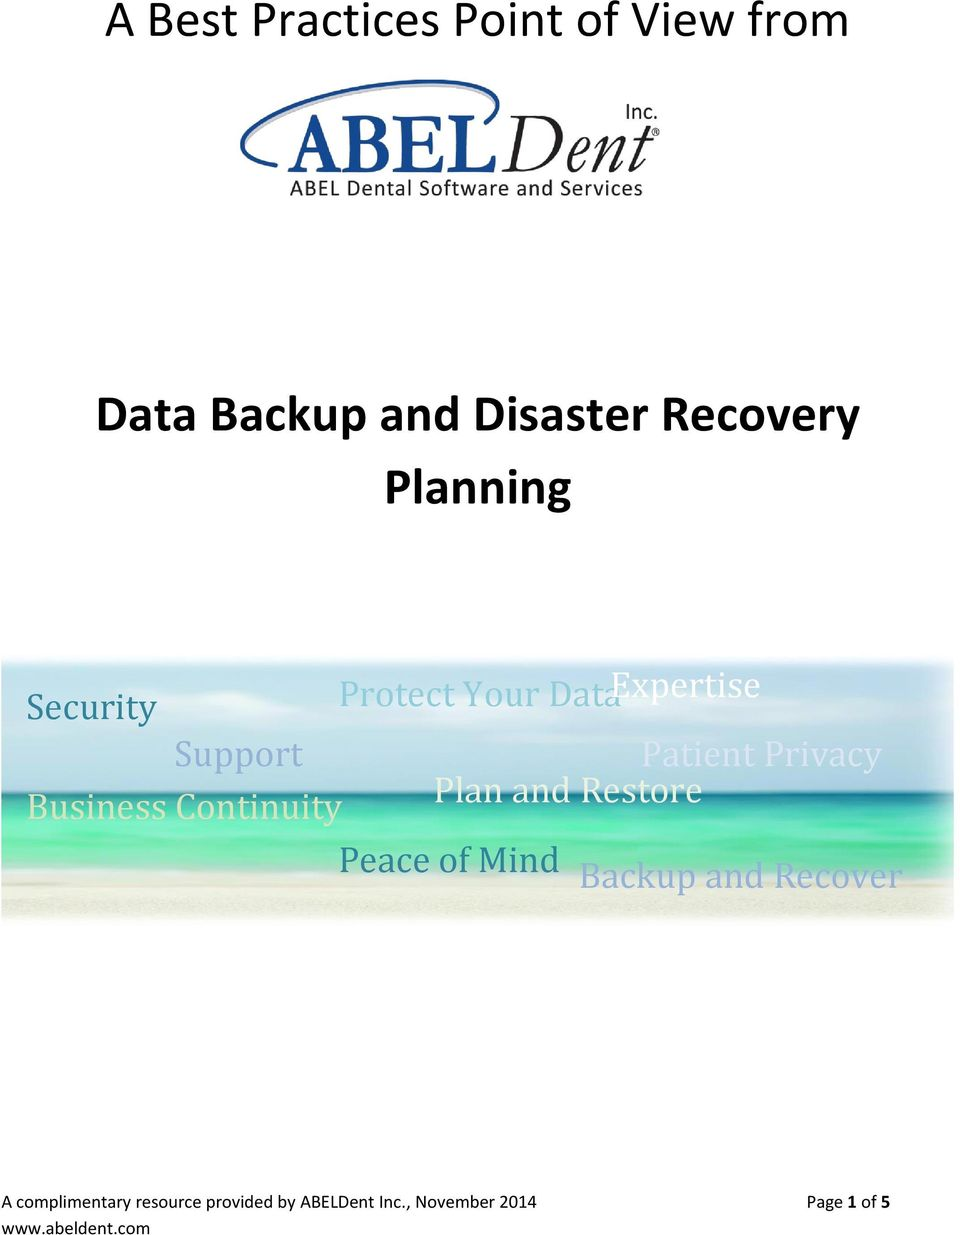 Business Continuity Plan and Restore Peace of Mind Backup and Recover A